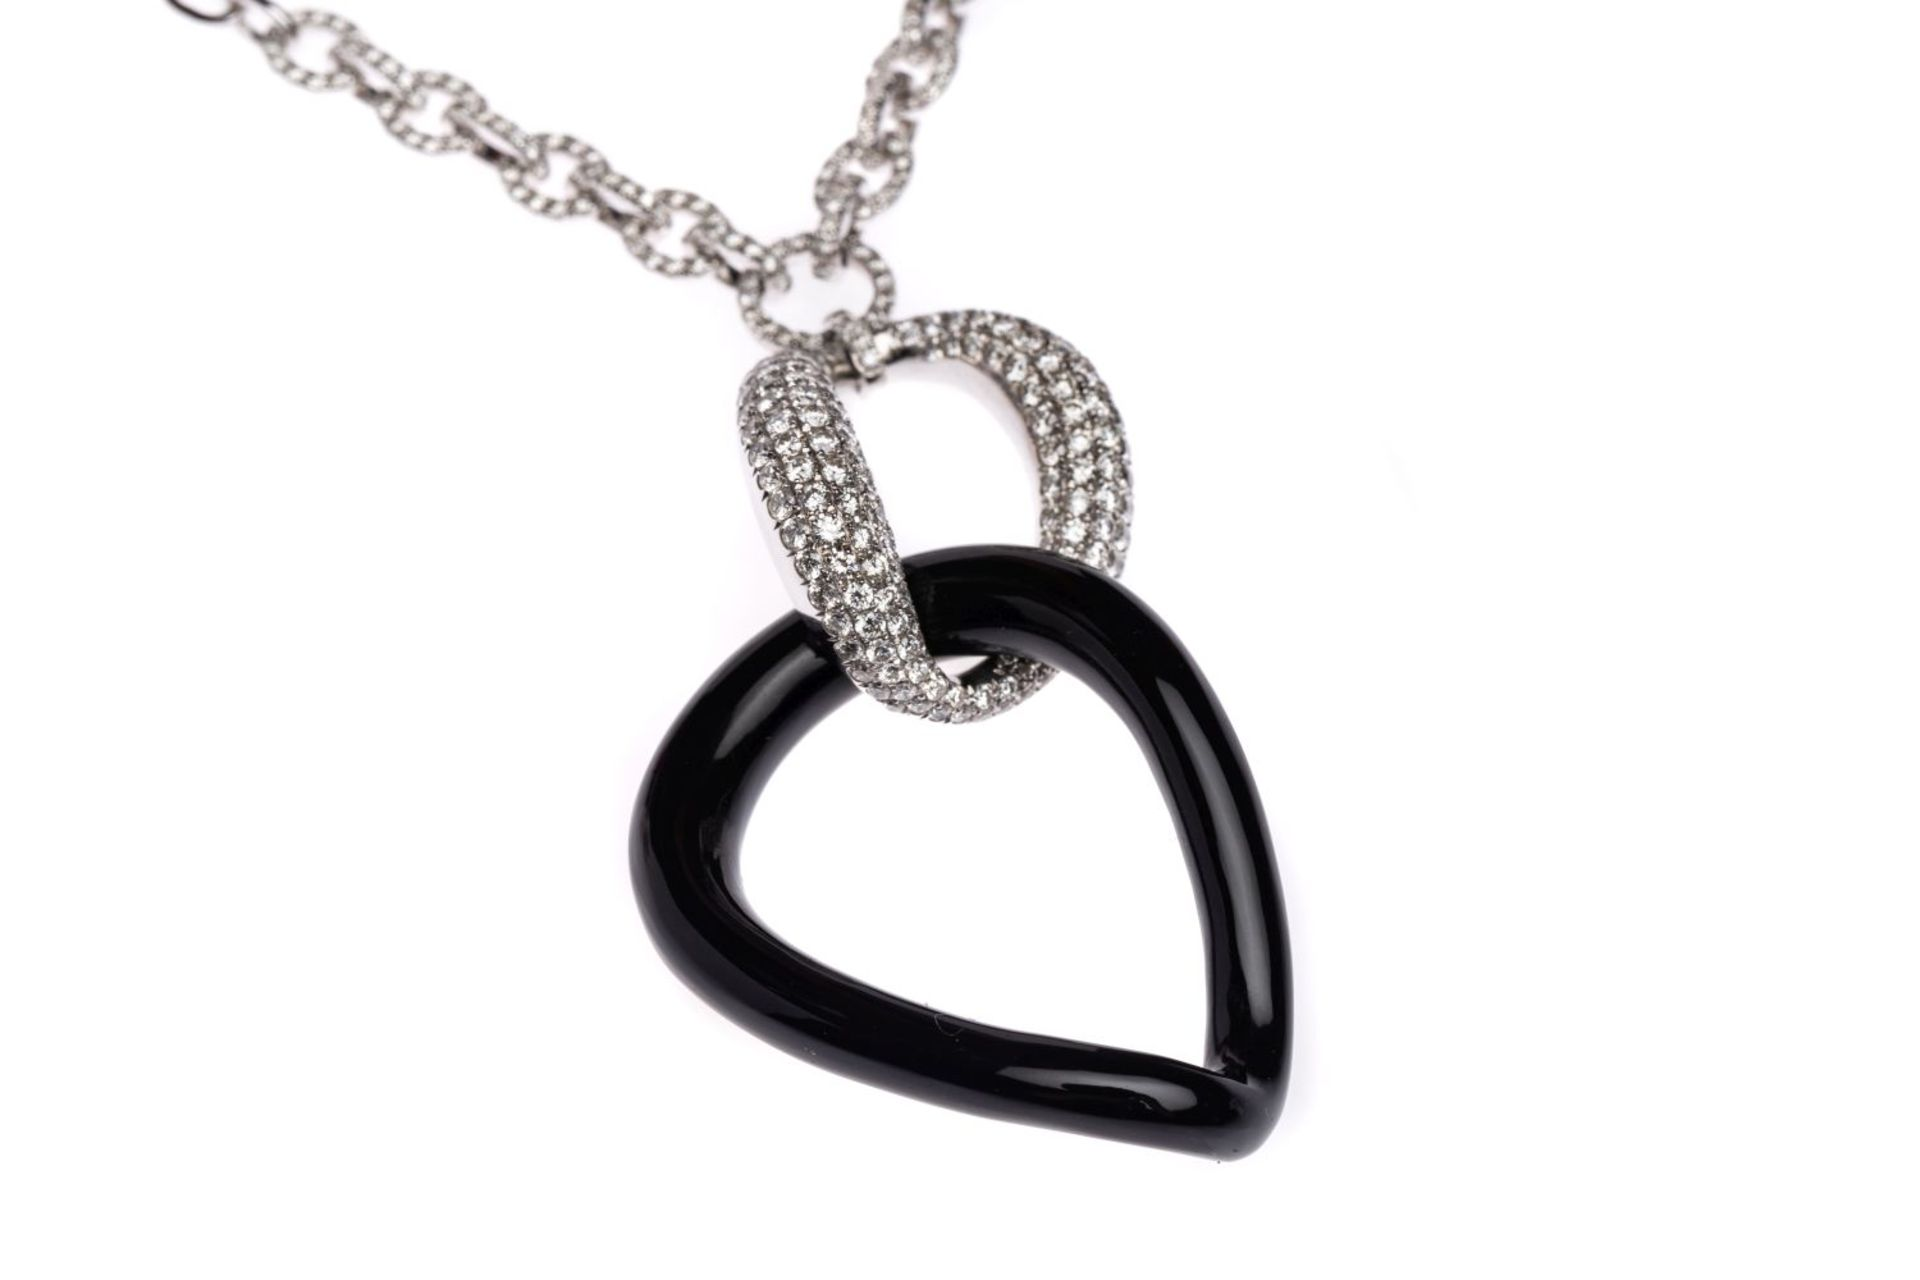 Los 124 - White gold necklace with Onyx18k white gold Necklace with diamonds total carat weight 3.05 ct, and